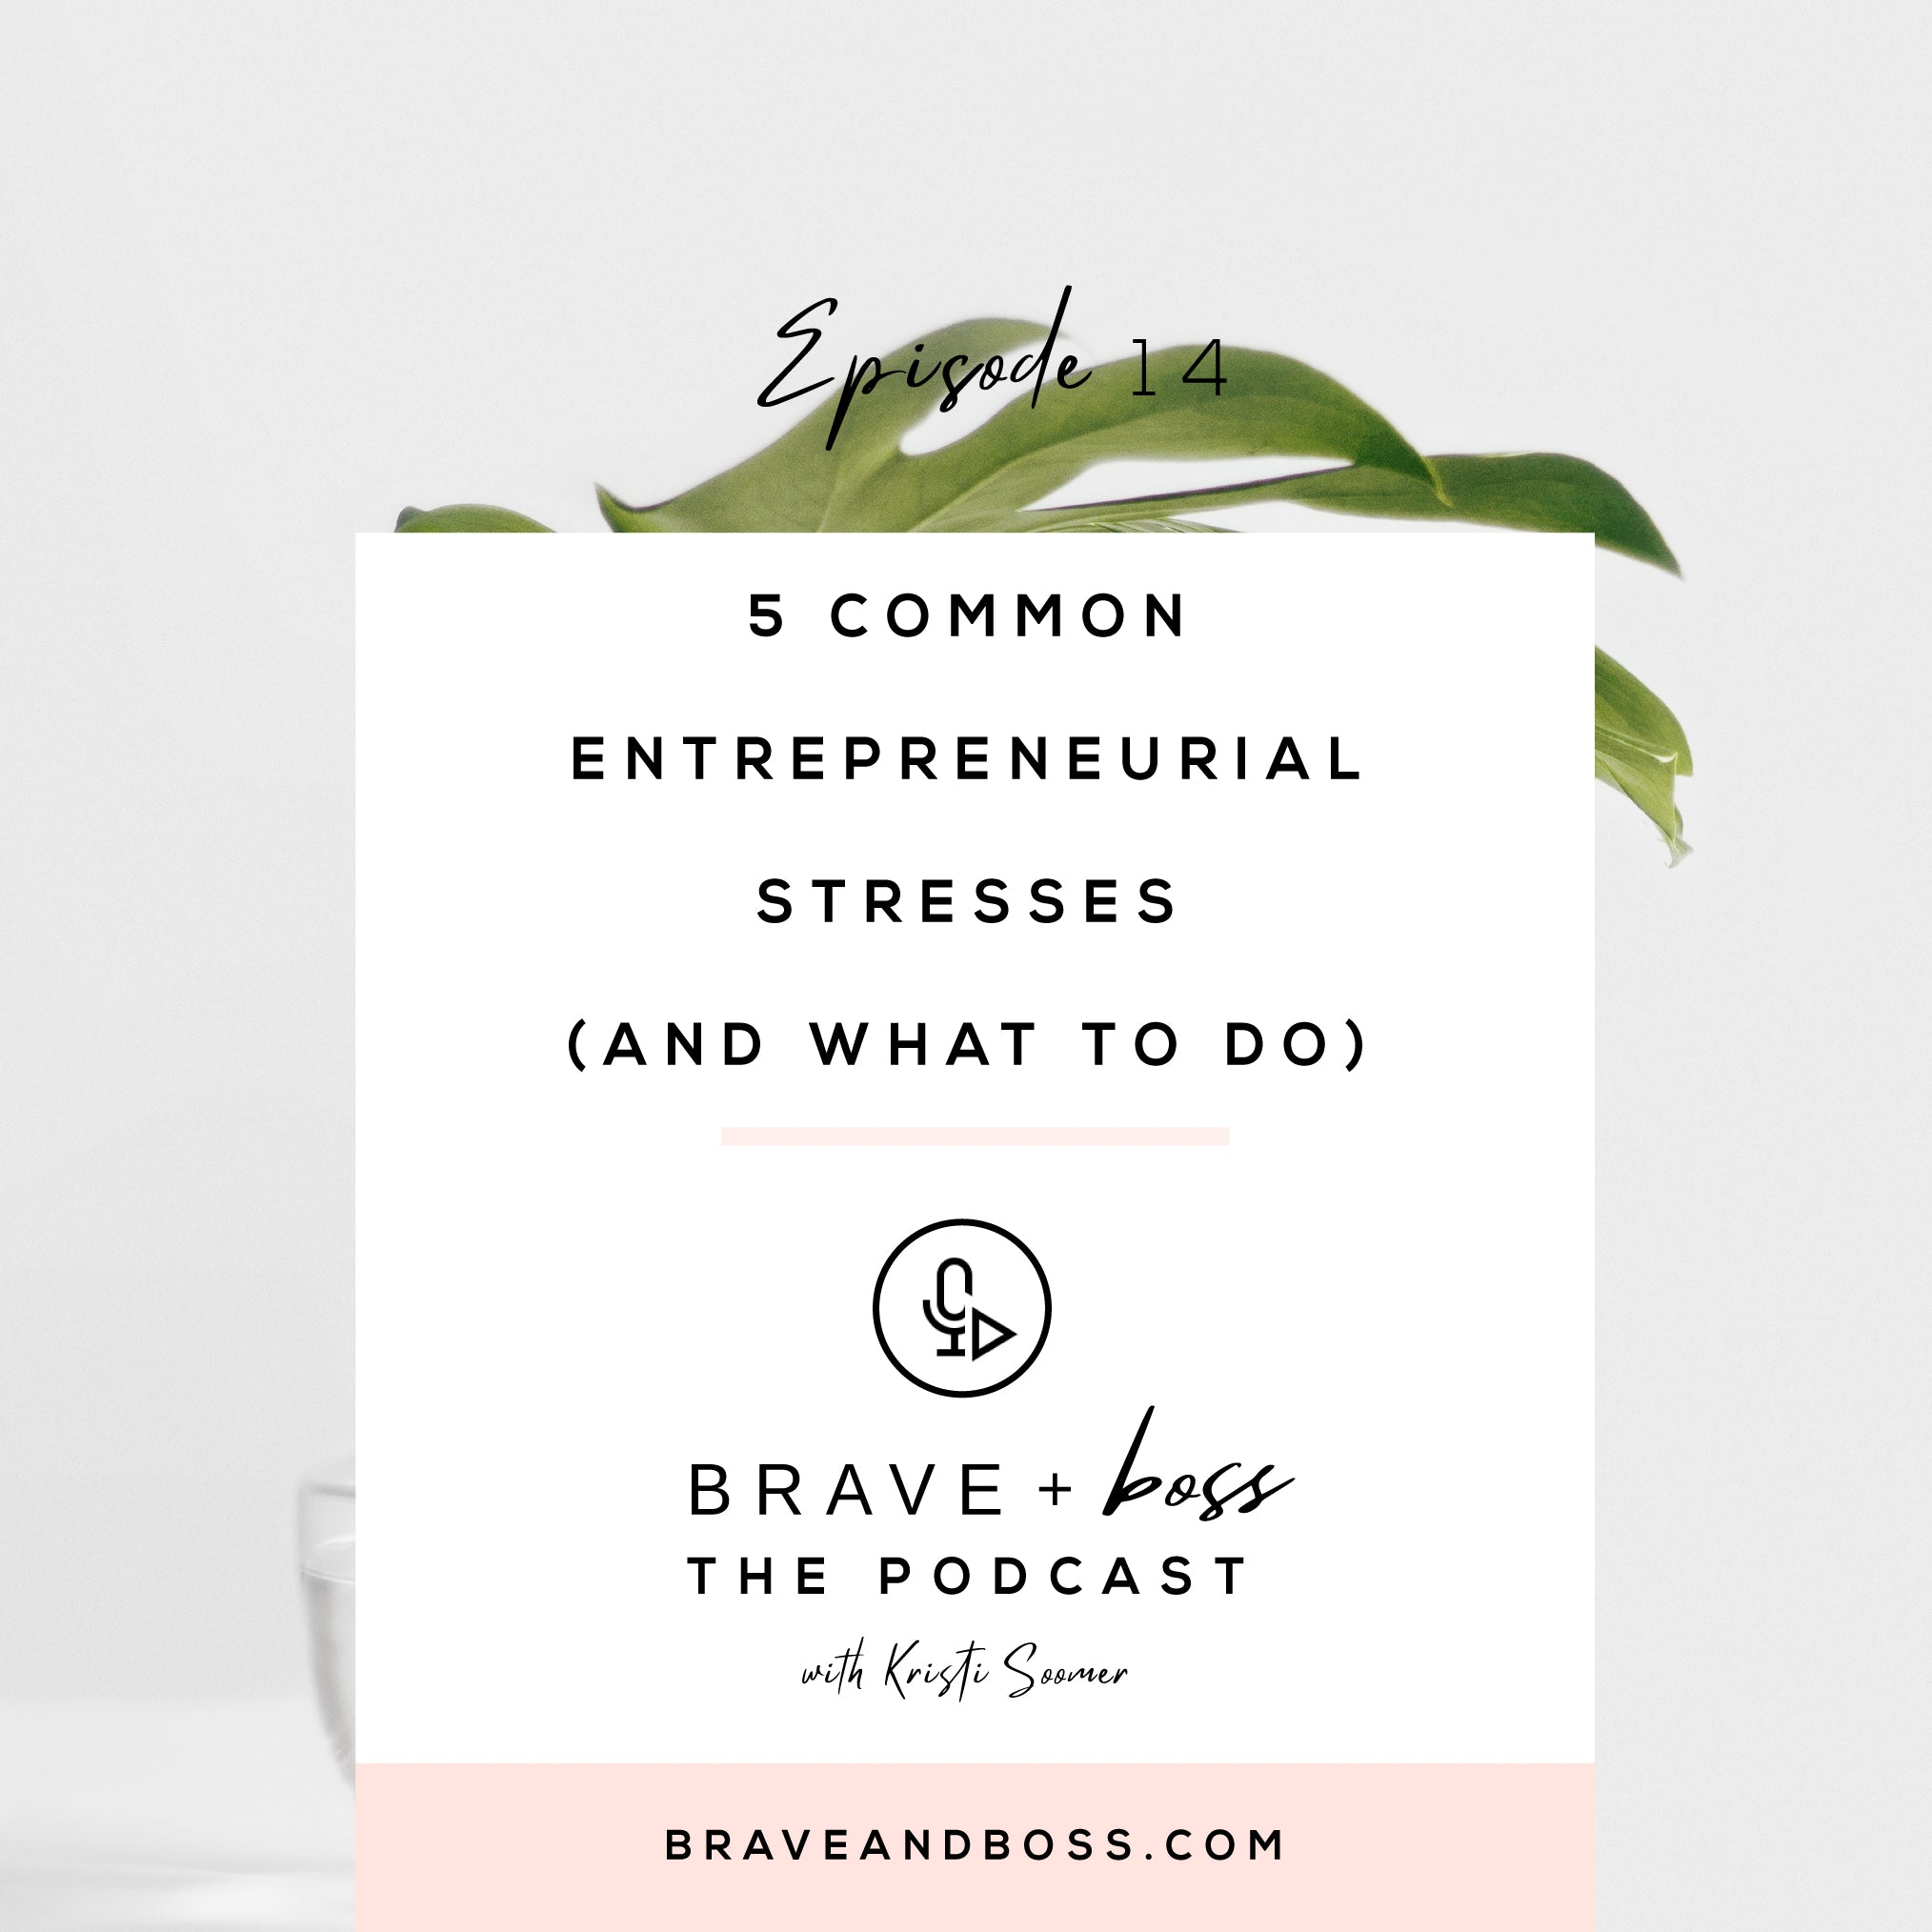 5 Common Entrepreneurial Stresses (And what to do!)